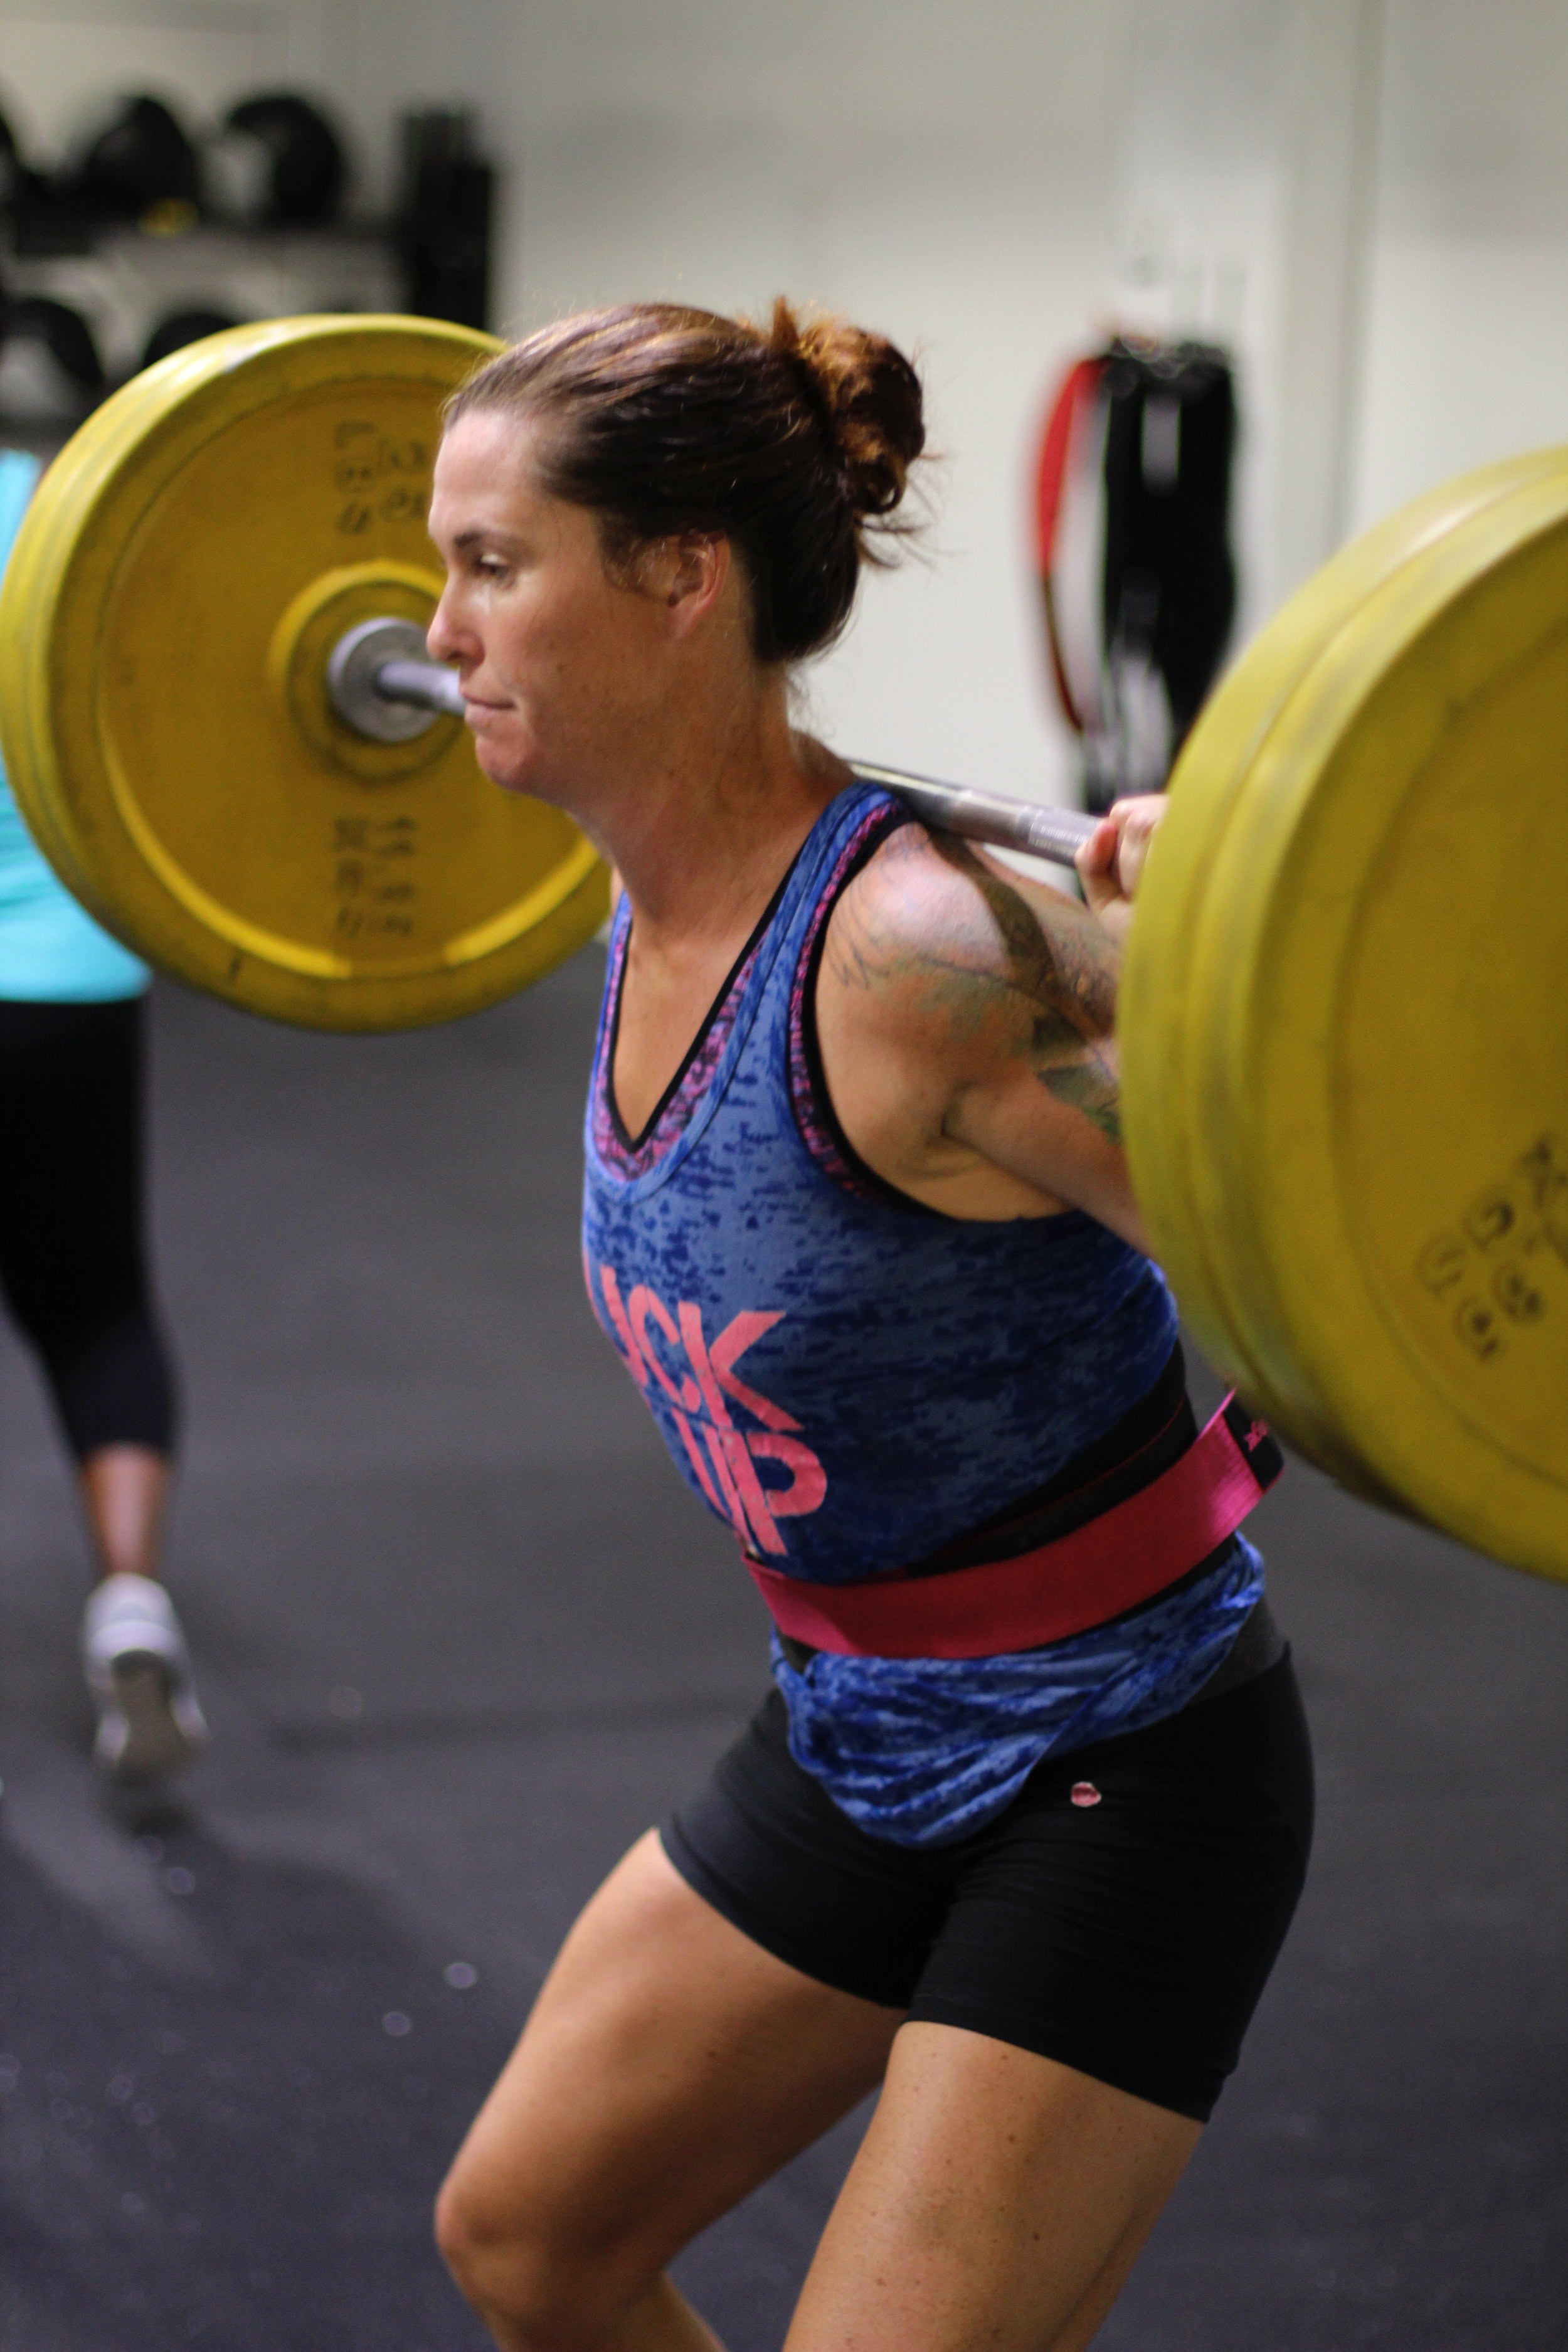 Coach Lauren getting in on the back squat gains during WEEK FOUR of our Strength Cycle!